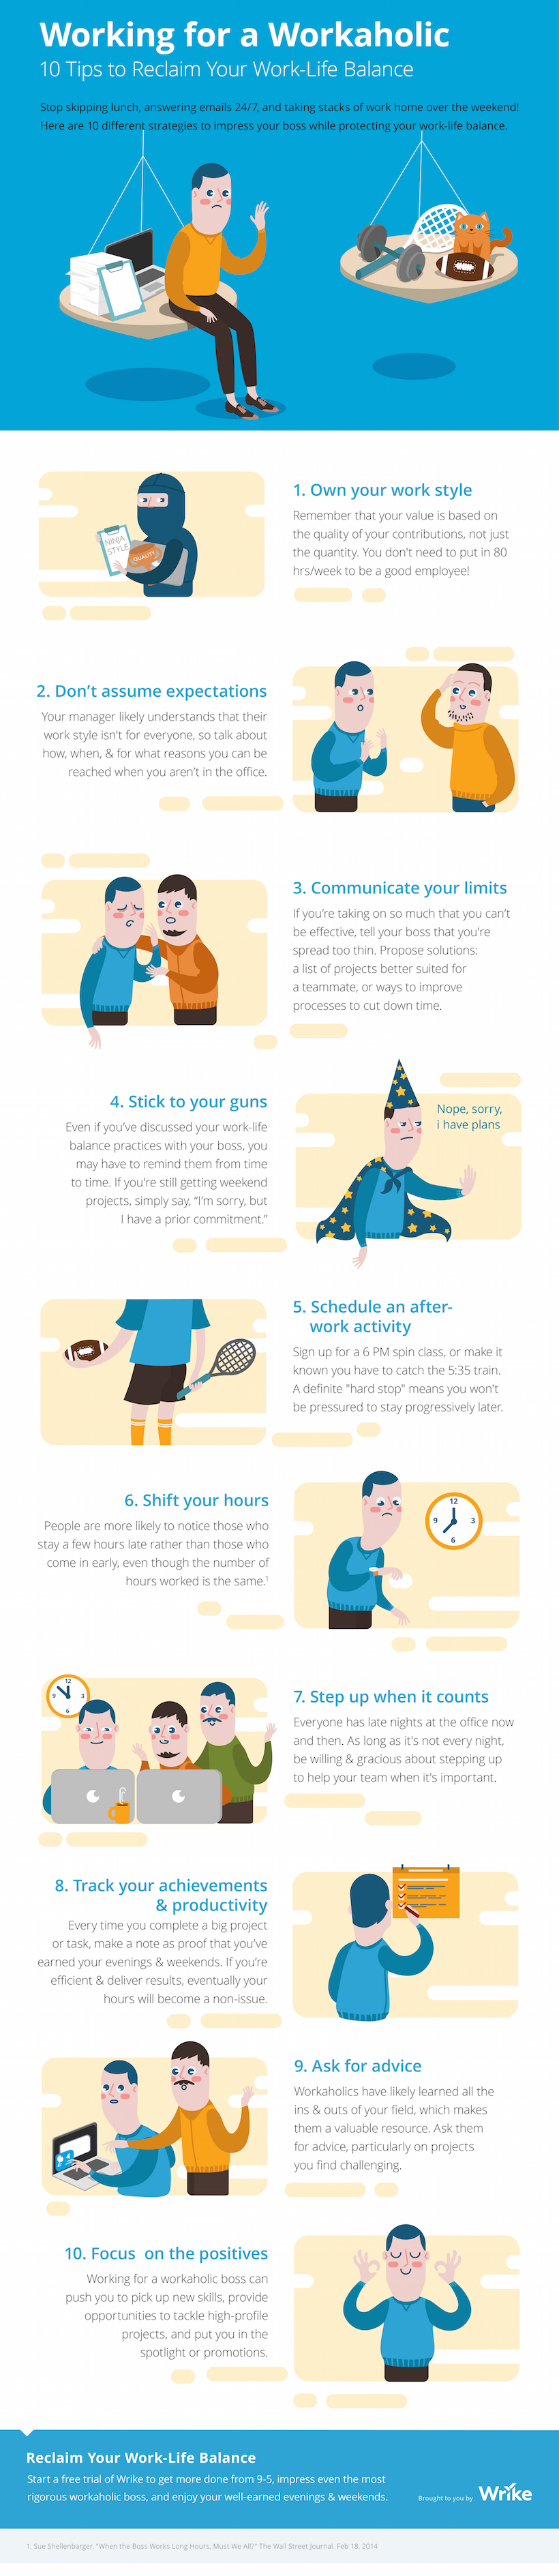 Working for a Workaholic: 10 Tips to Reclaim Your Work-Life Balance (#Infographic)